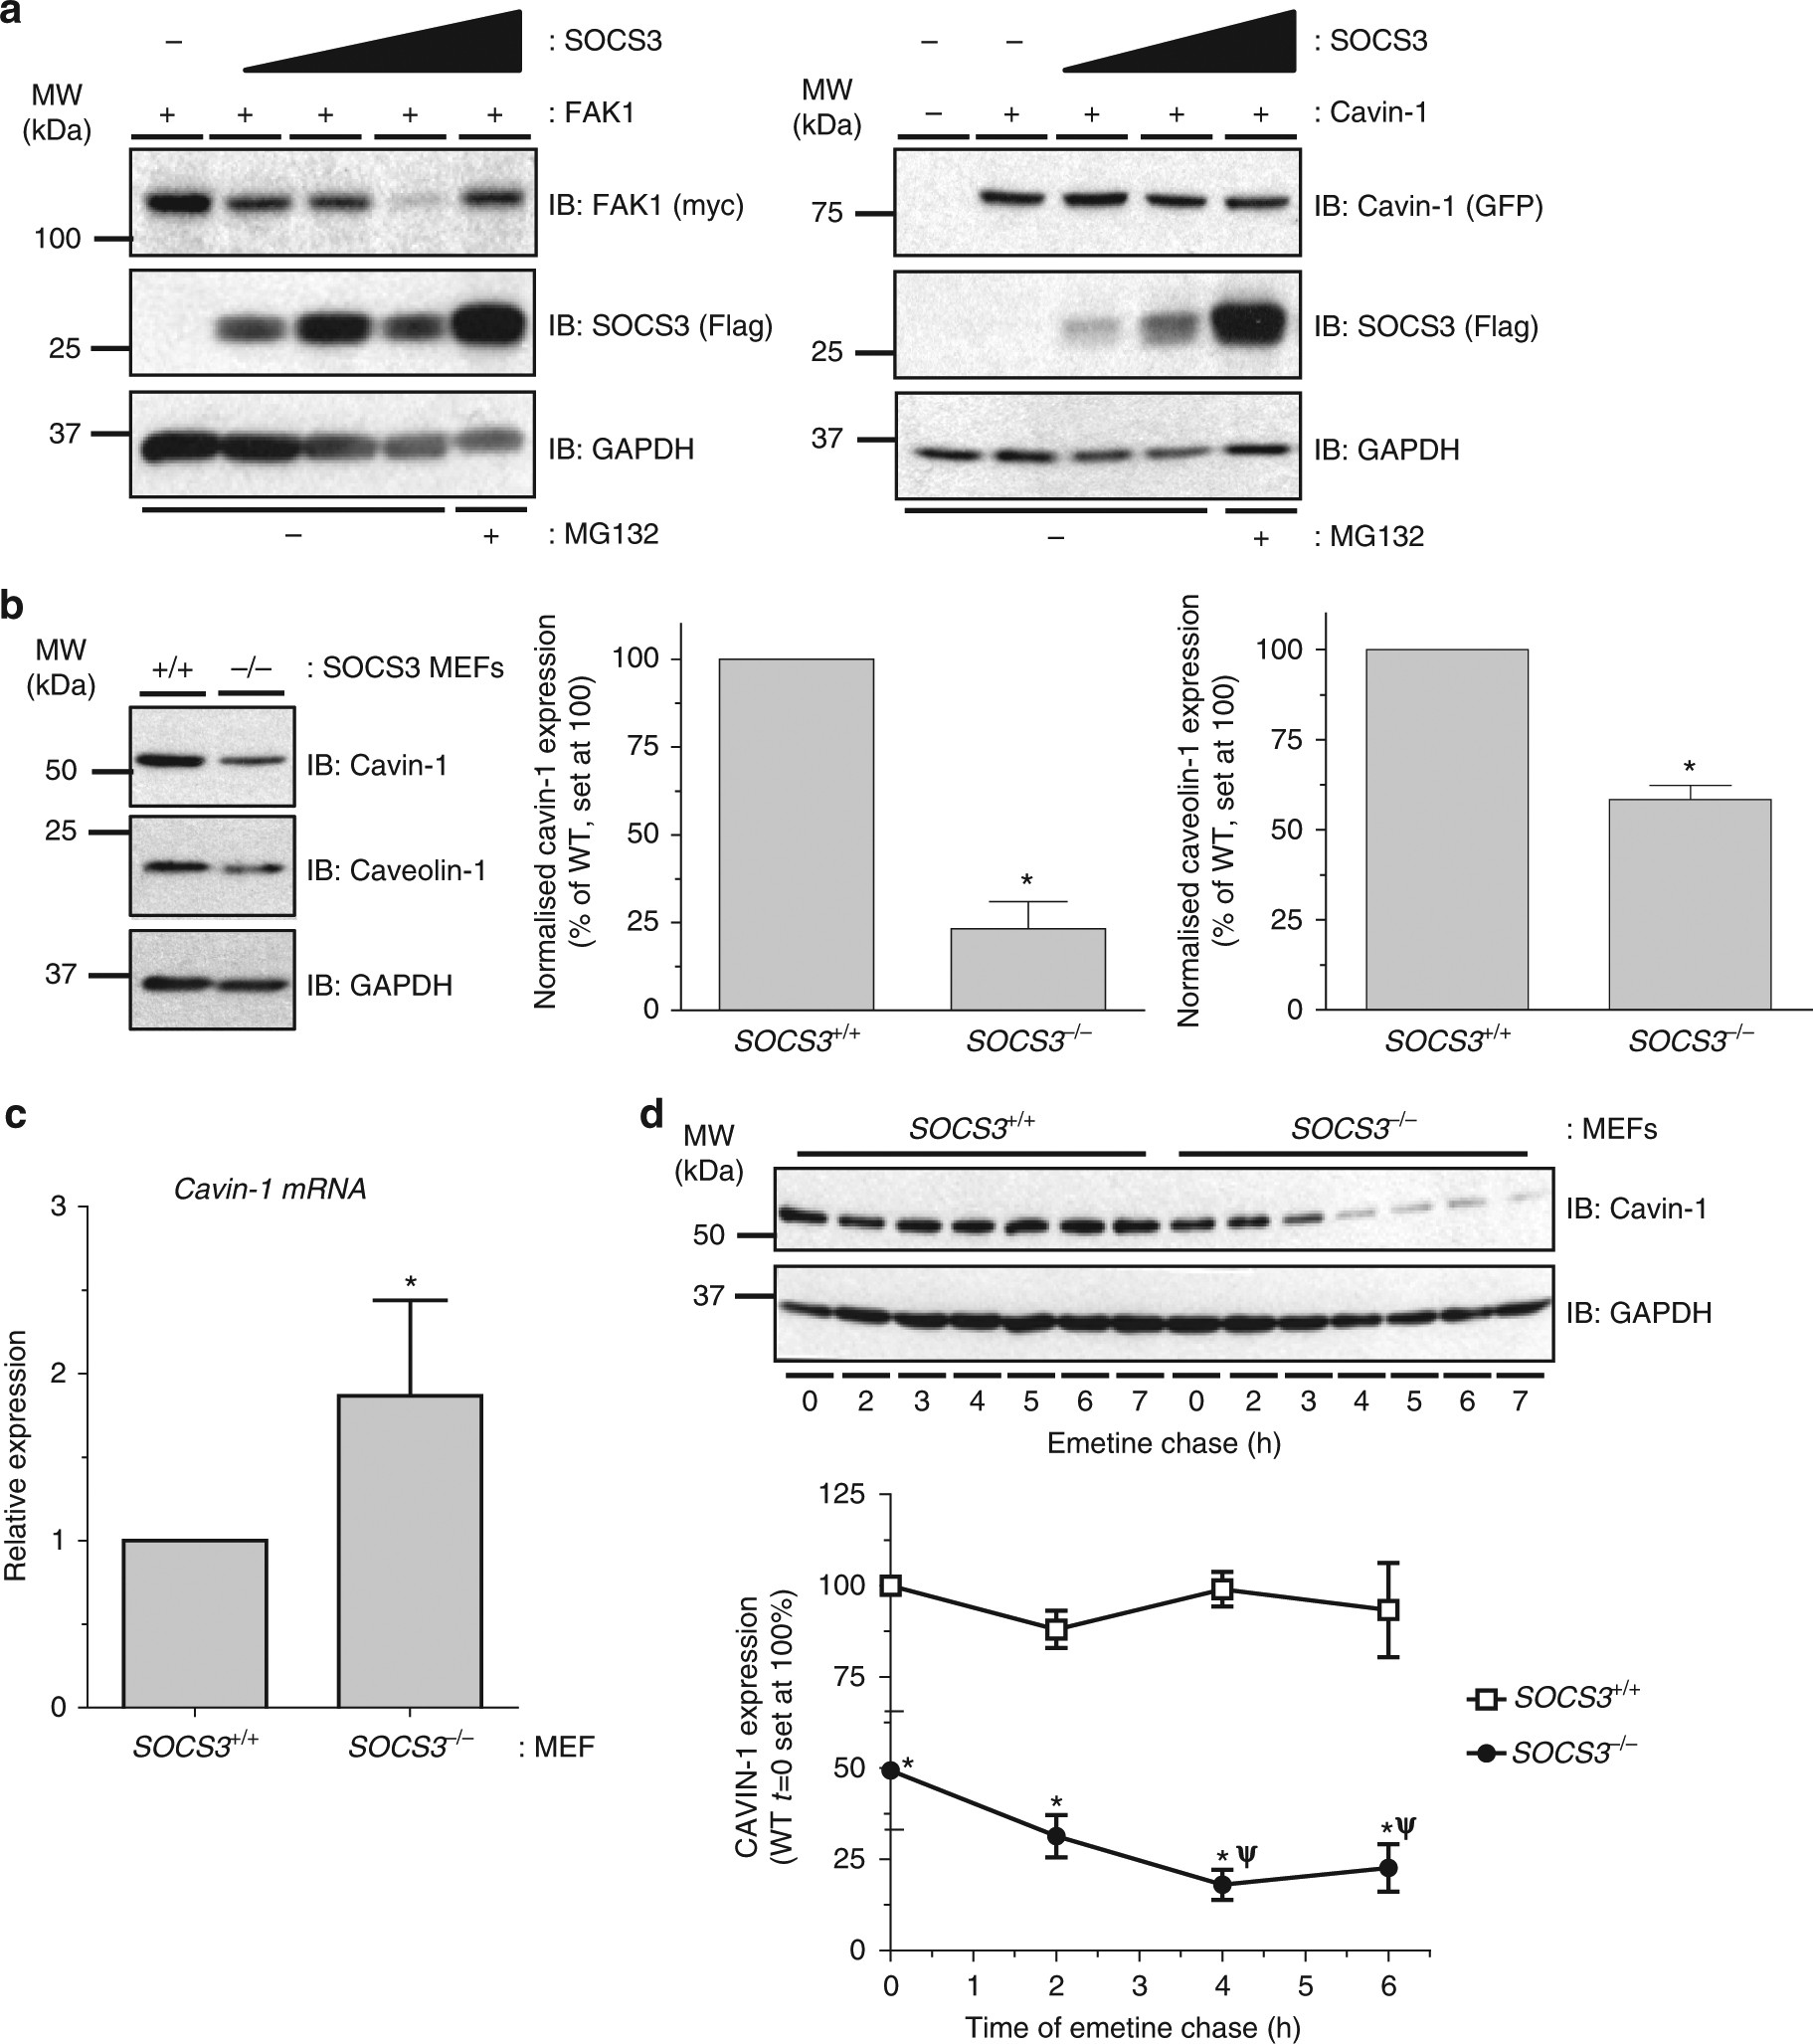 Interaction of suppressor of cytokine signalling 3 with cavin 1